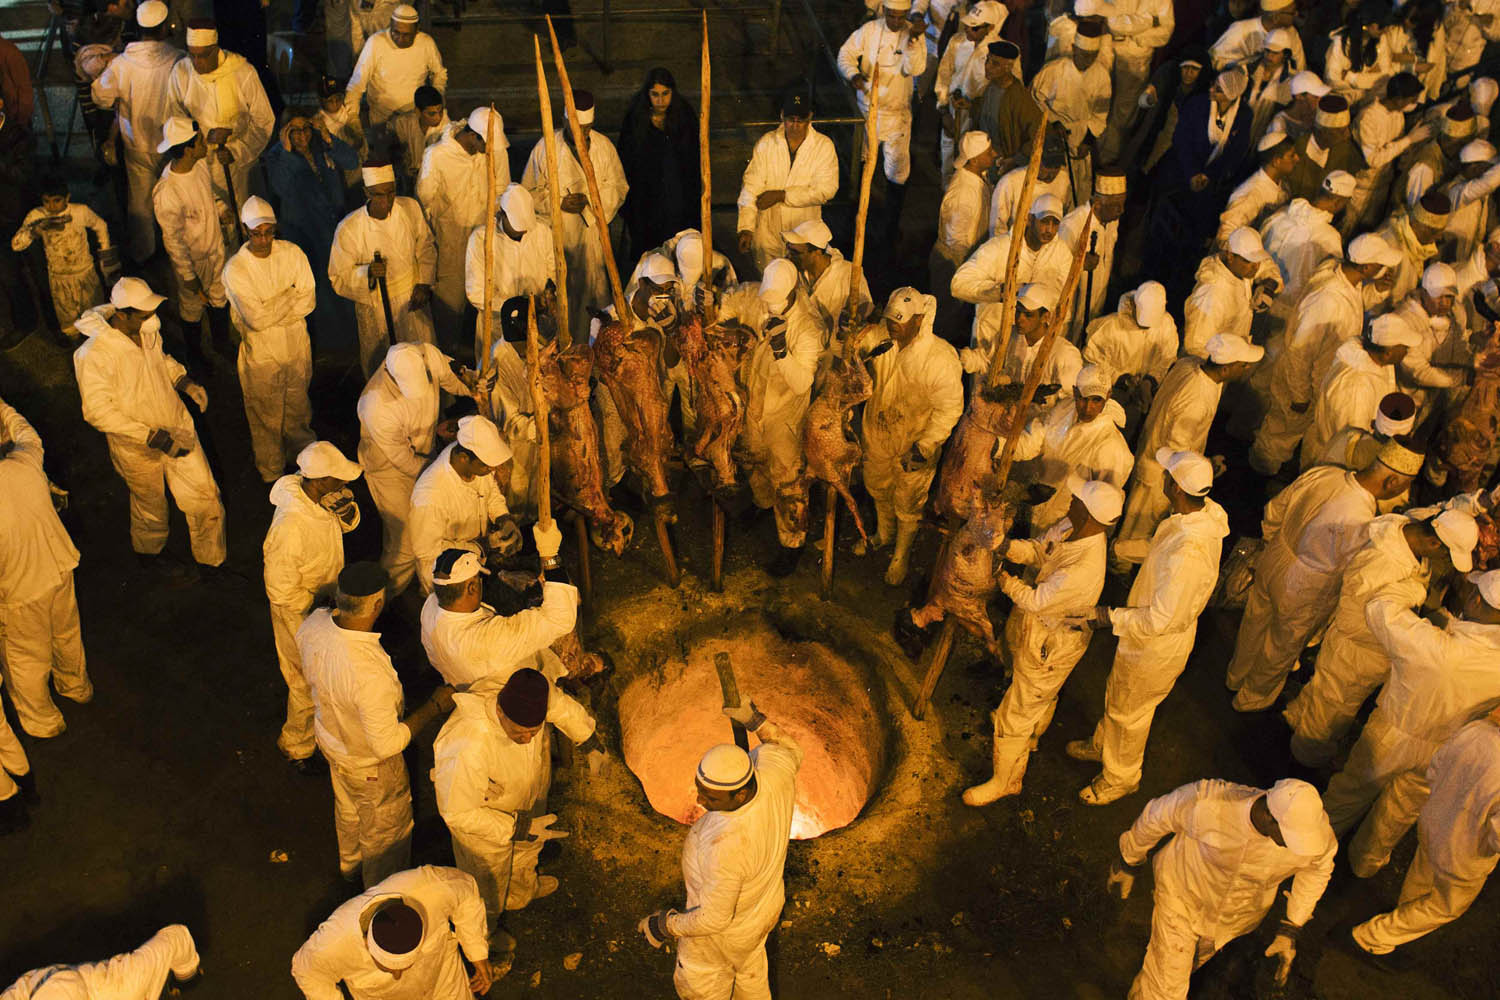 April 23, 2013. Members of the Samaritan sect place large sheep skewers into an oven during a traditional Passover sacrifice ceremony on Mount Gerizim, near the West Bank city of Nablus.